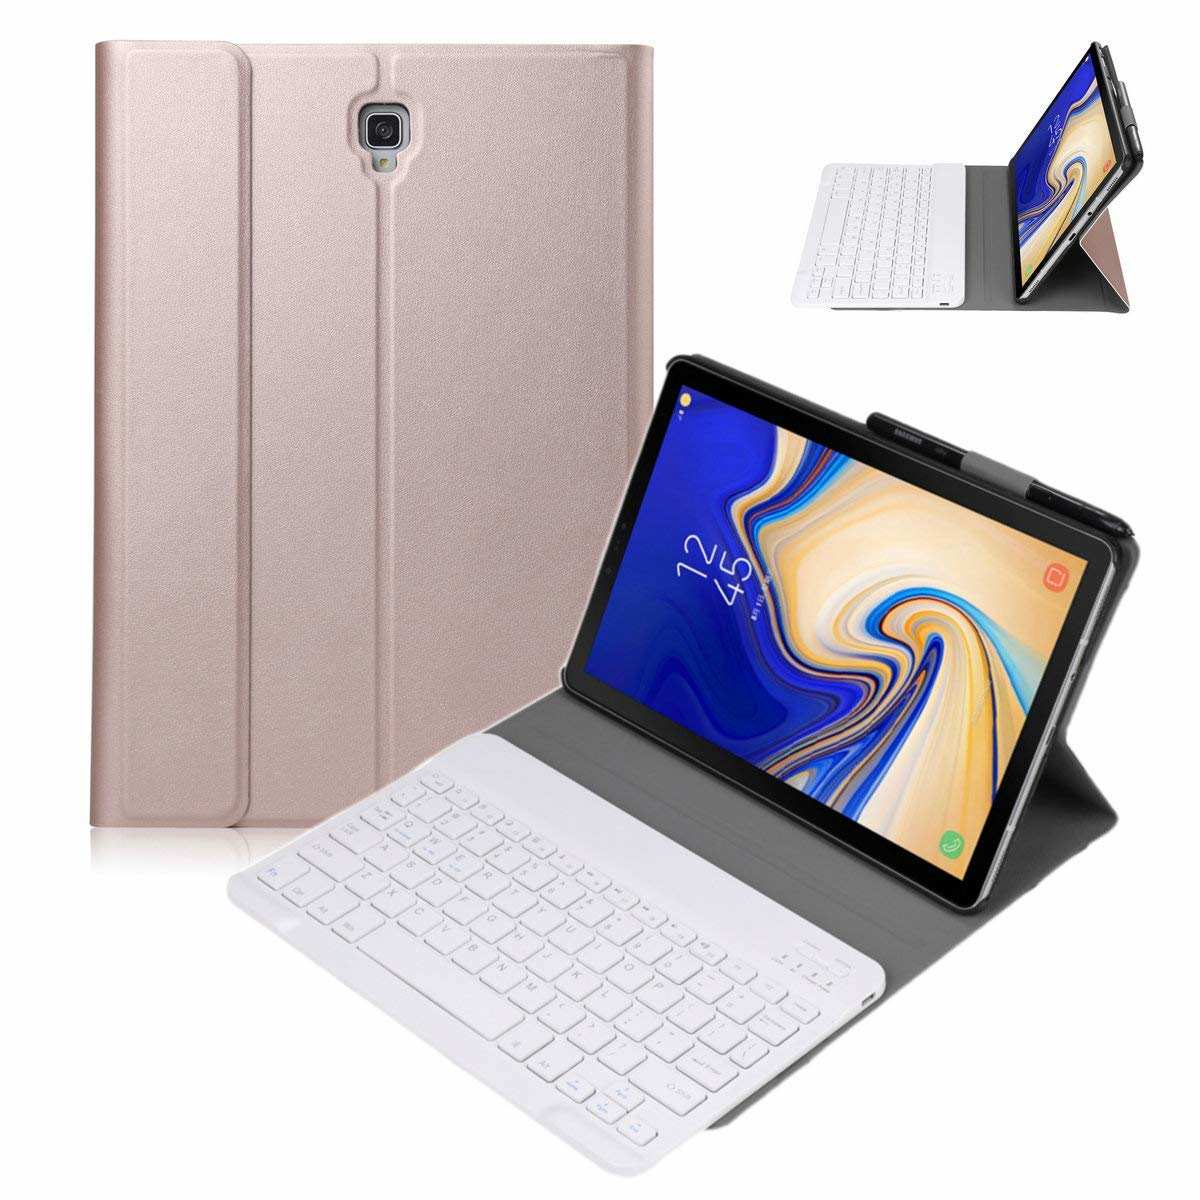 wholesale For Samsung Galaxy Tab S5e 10.5 SM-T720/T725 Detachable Bluetooth Keyboard Leather Case - Rose Gold